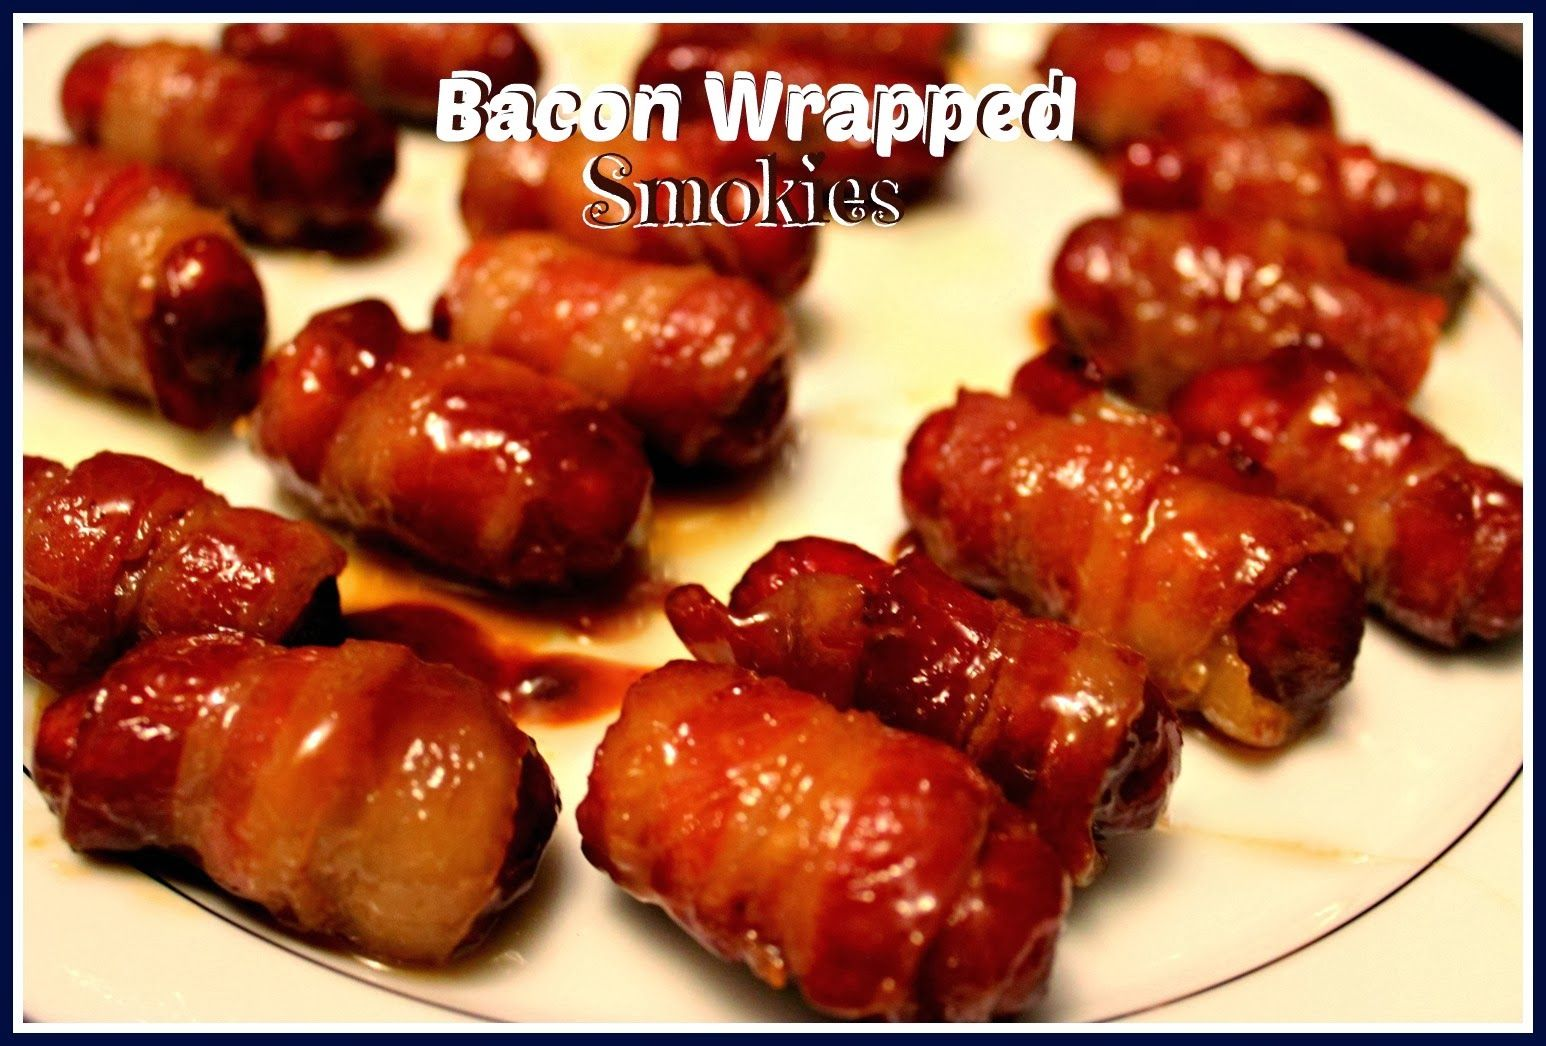 Bacon Wrapped Smokies! 4 Tbs butter, melted 2 cups brown sugar, divided 2 tsp. Worcestershire sauce dash of hot sauce (optional) 1 lb. bacon, slices cut in thirds 1lb. package Little Smokies sausages